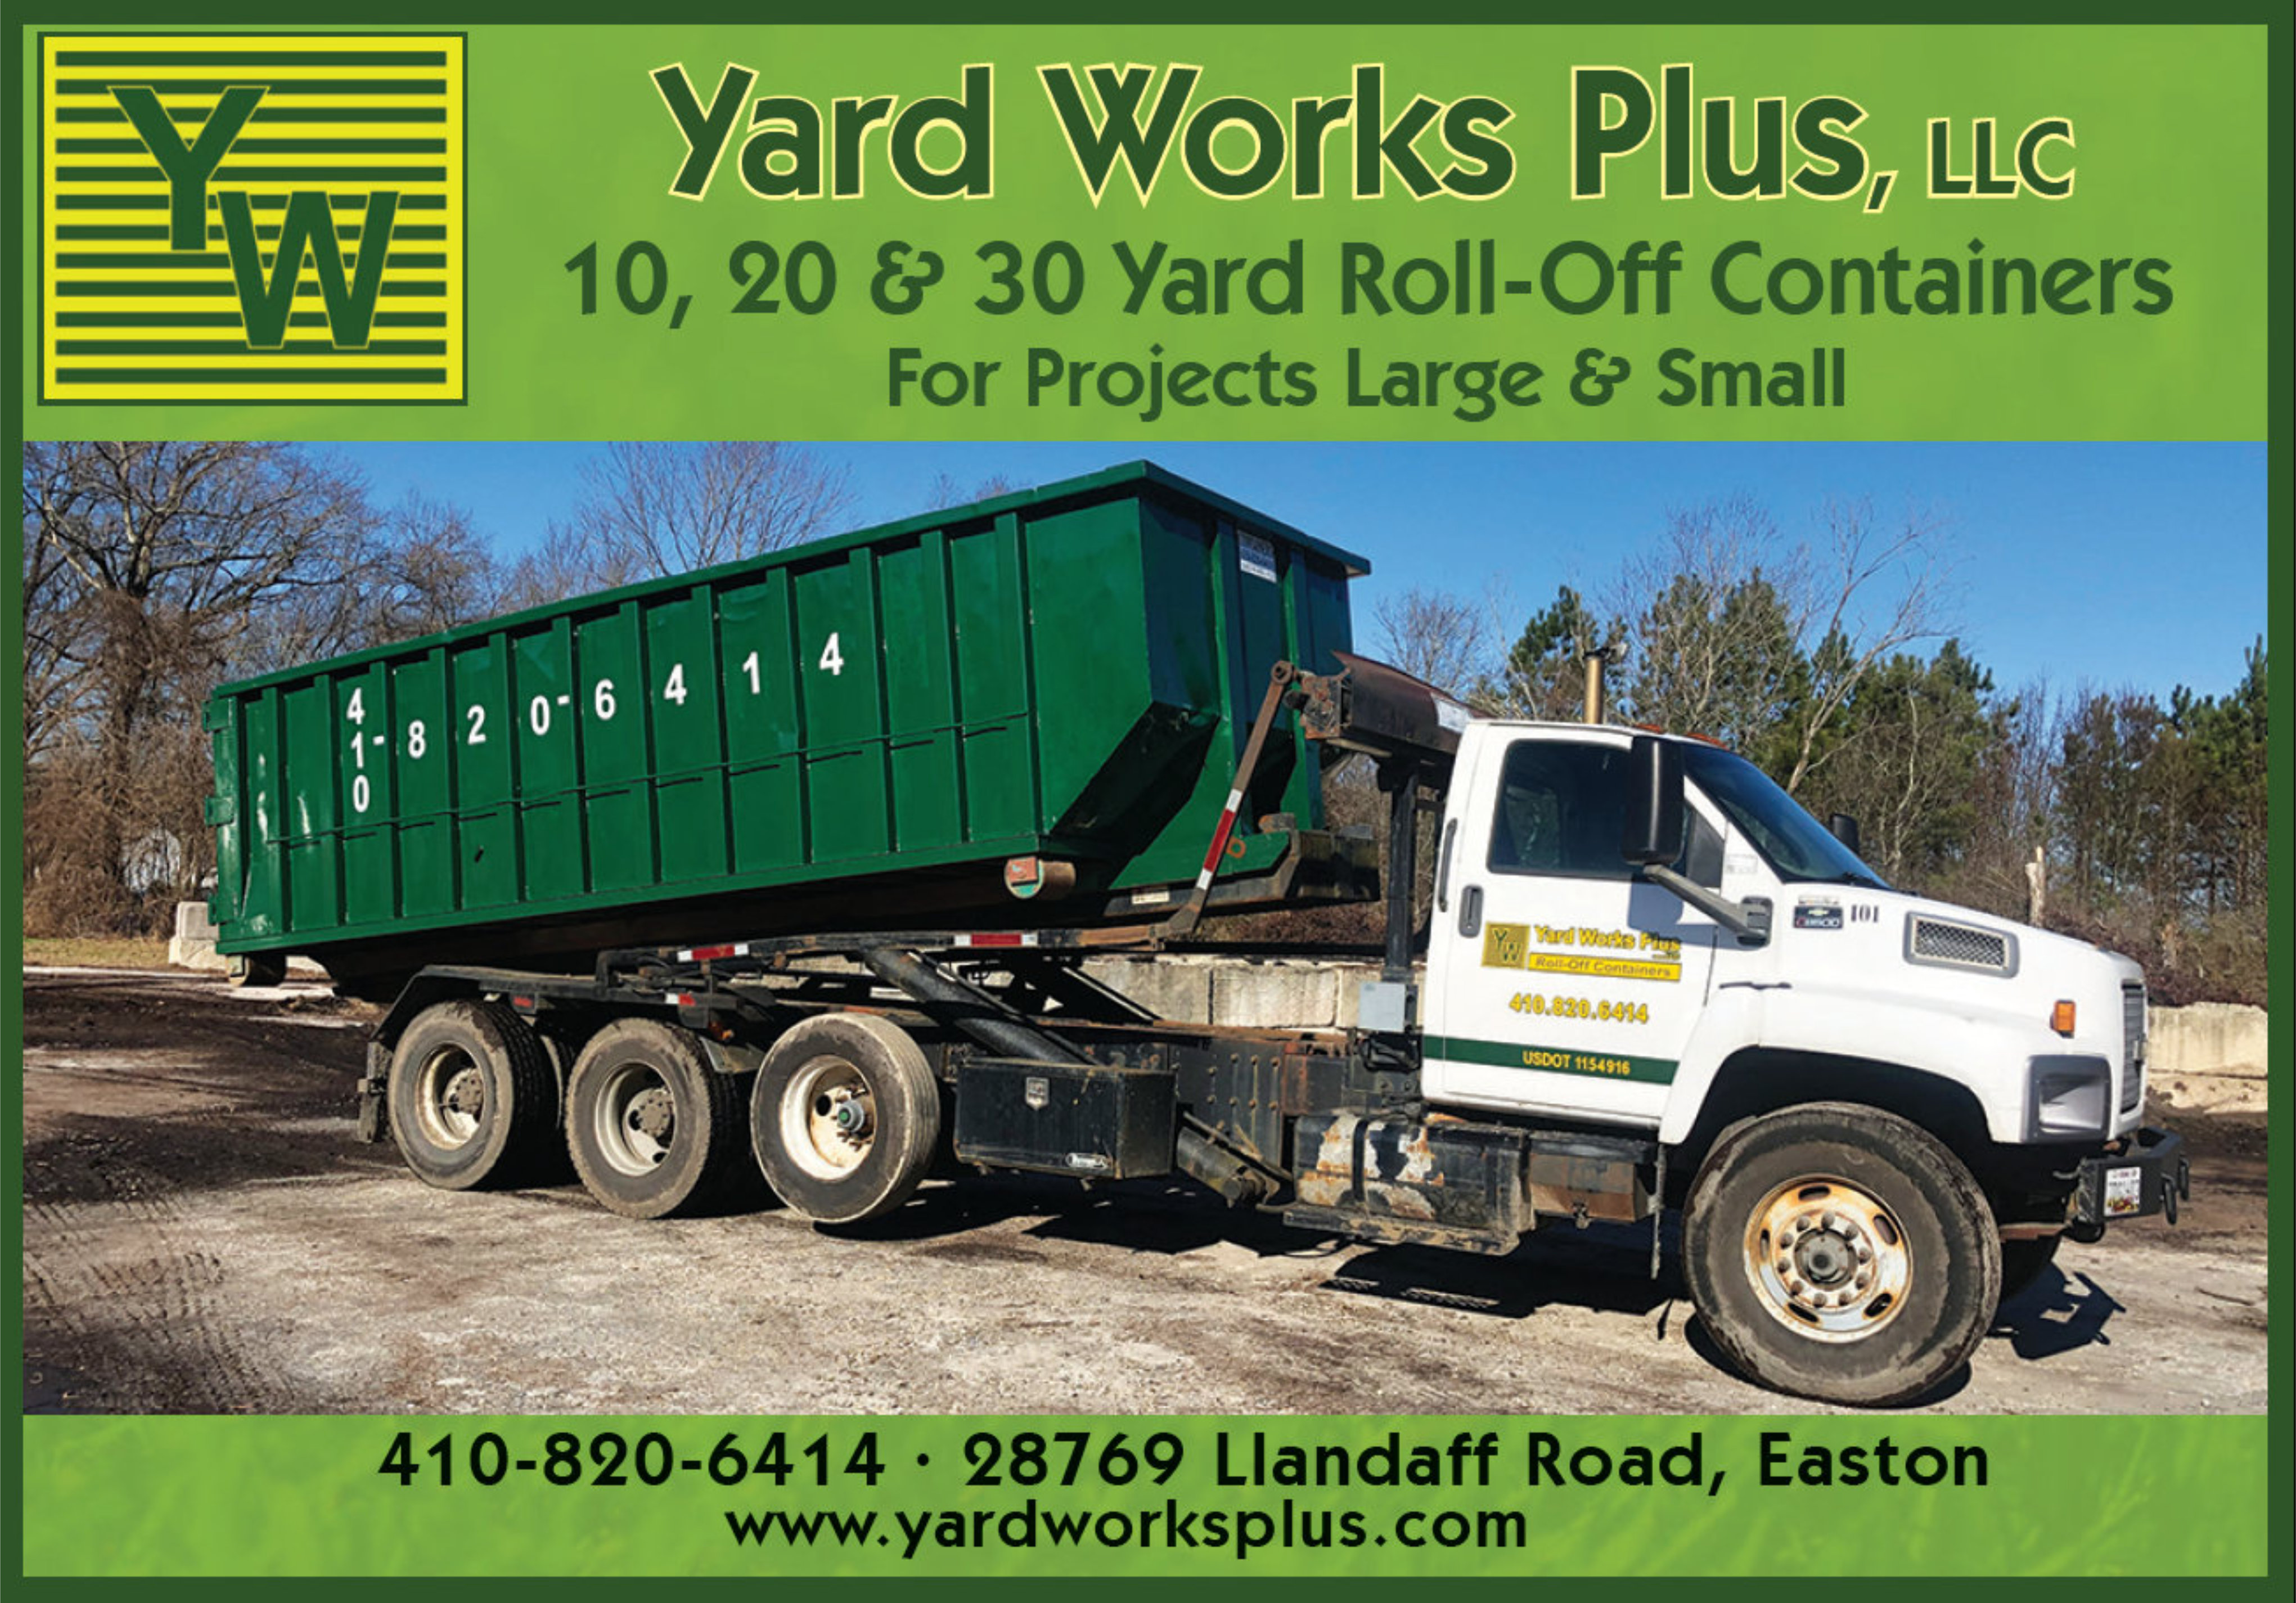 Yard Works Plus LLC